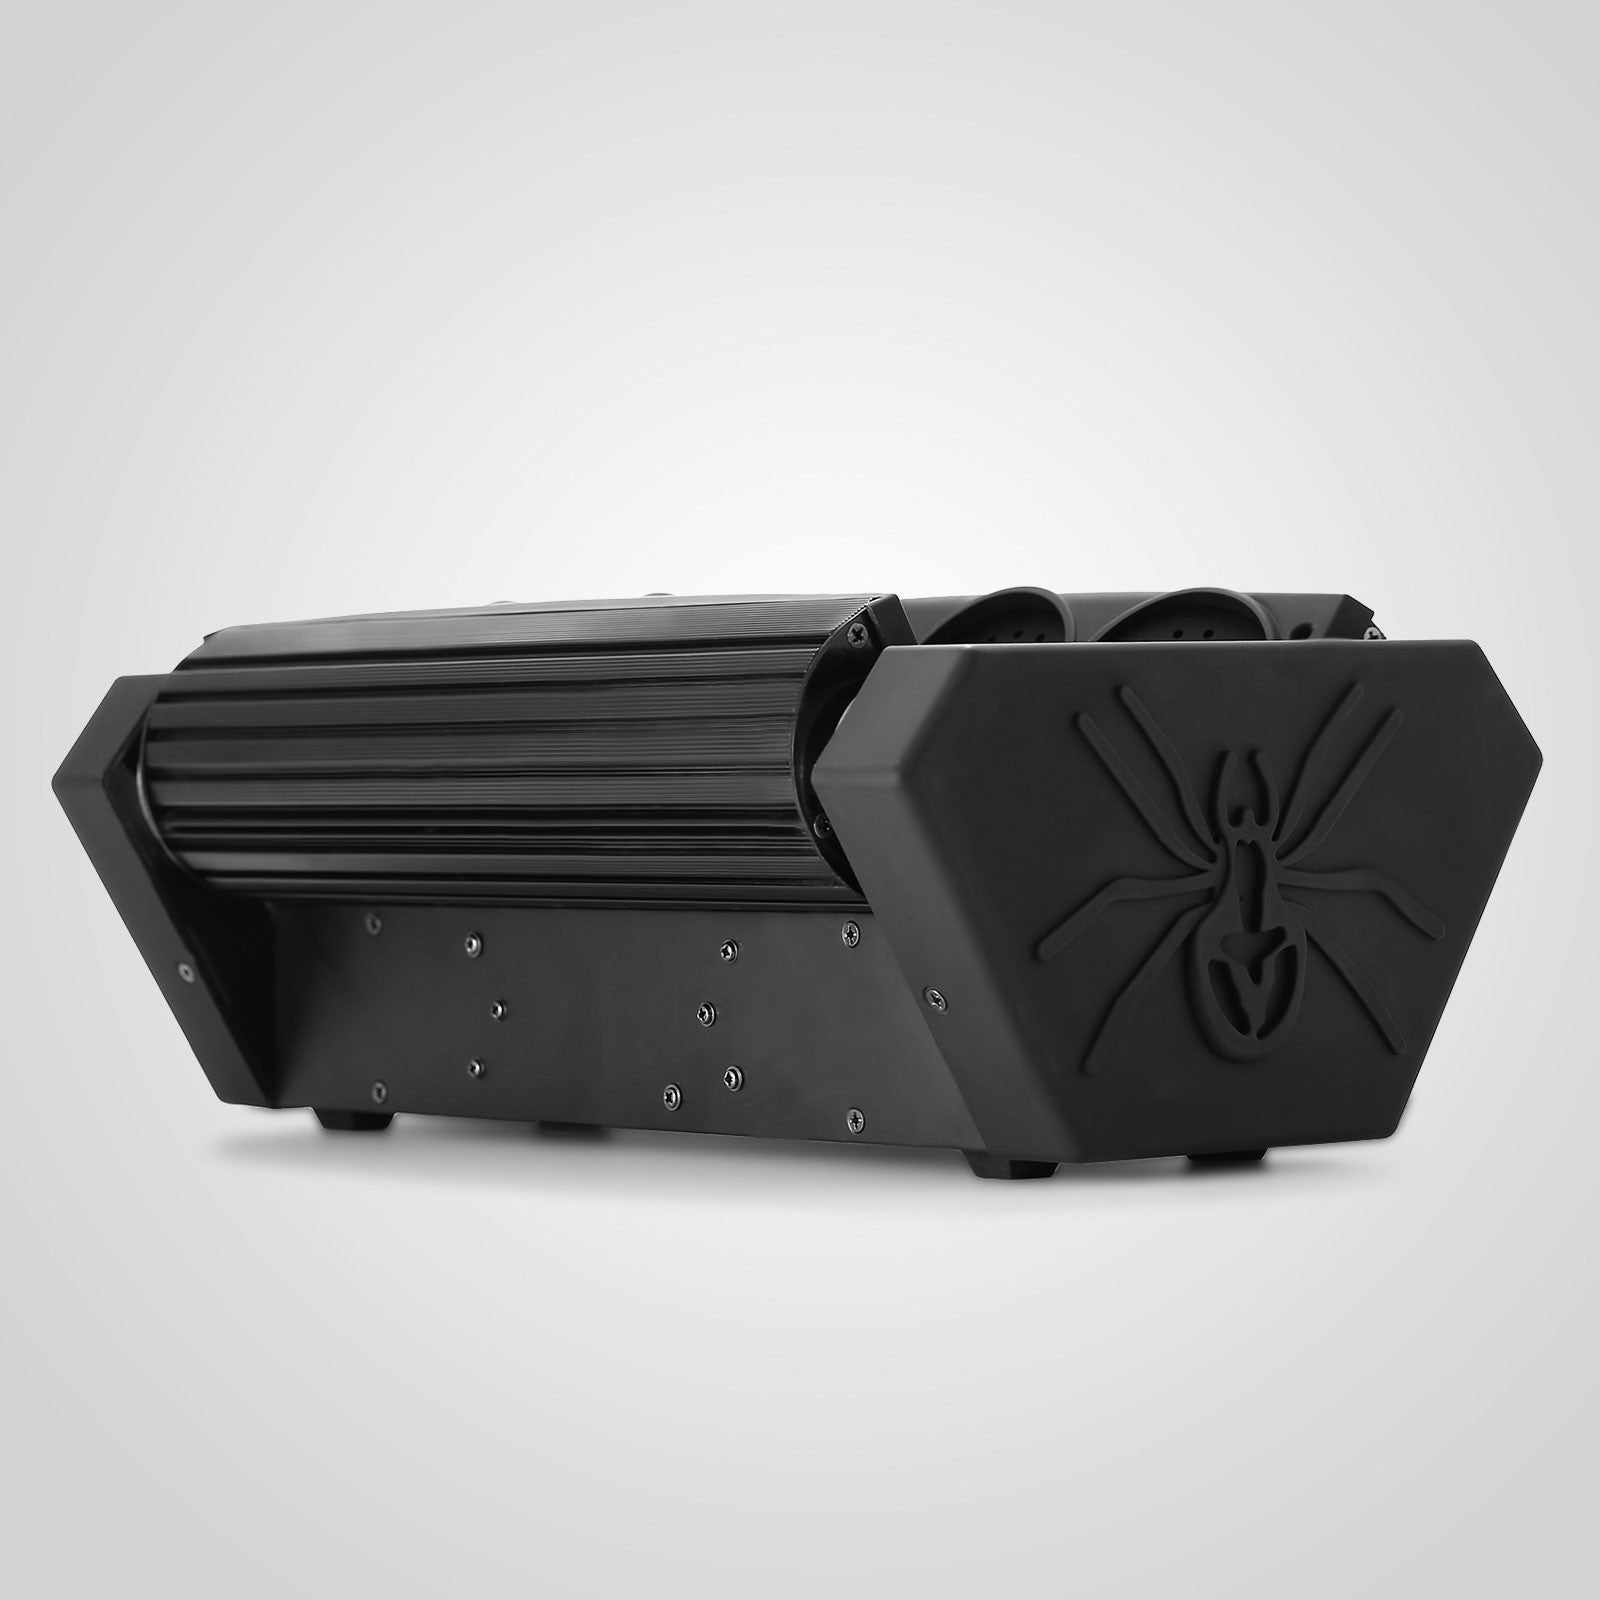 Rgb Full Color Laser Spider Moving Head Light/dmx/ktv Bar Dj Disco Beam Light